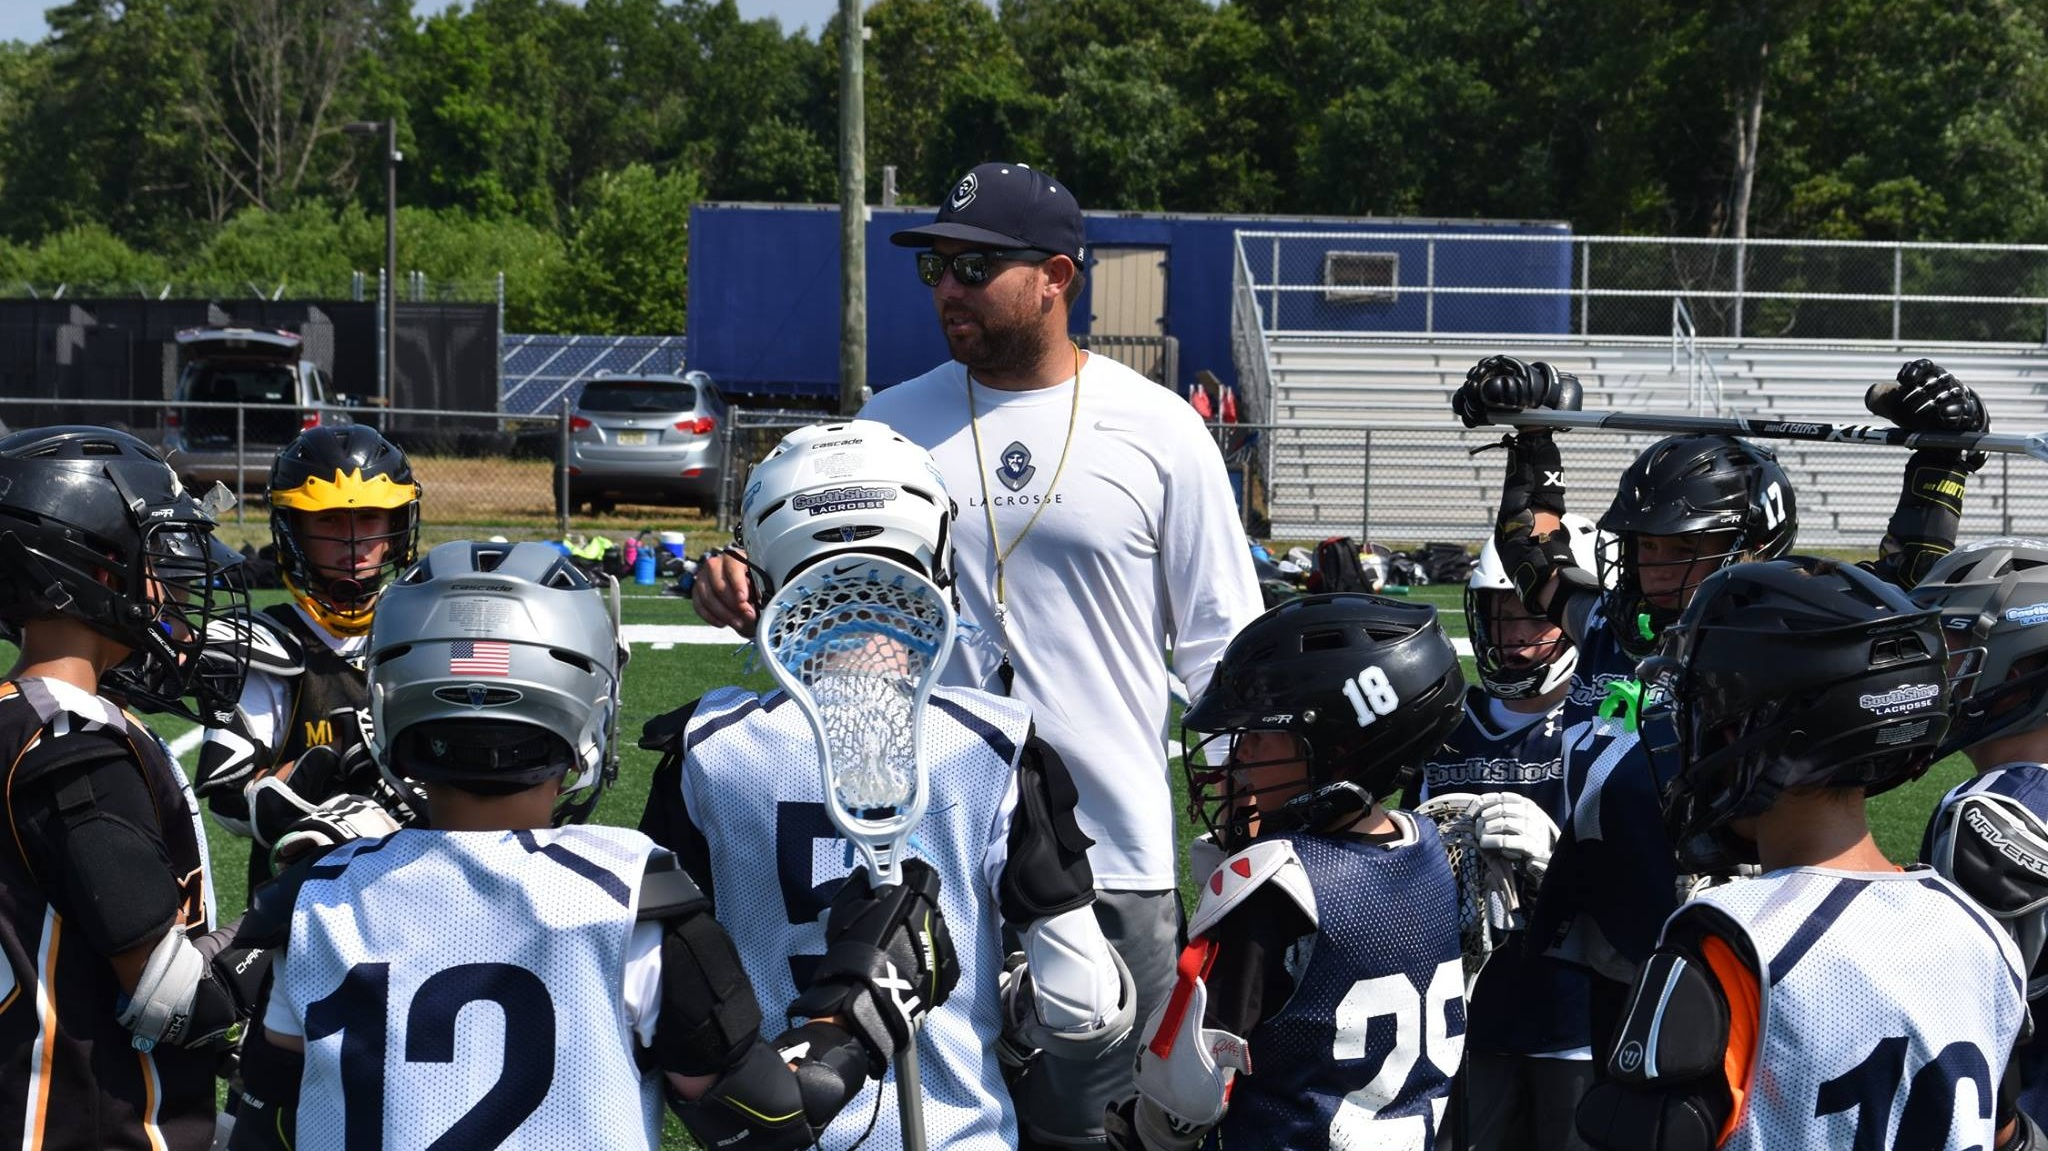 CHAD FLEXON ('03) - Assistant Coach | 12th YearKings College '07